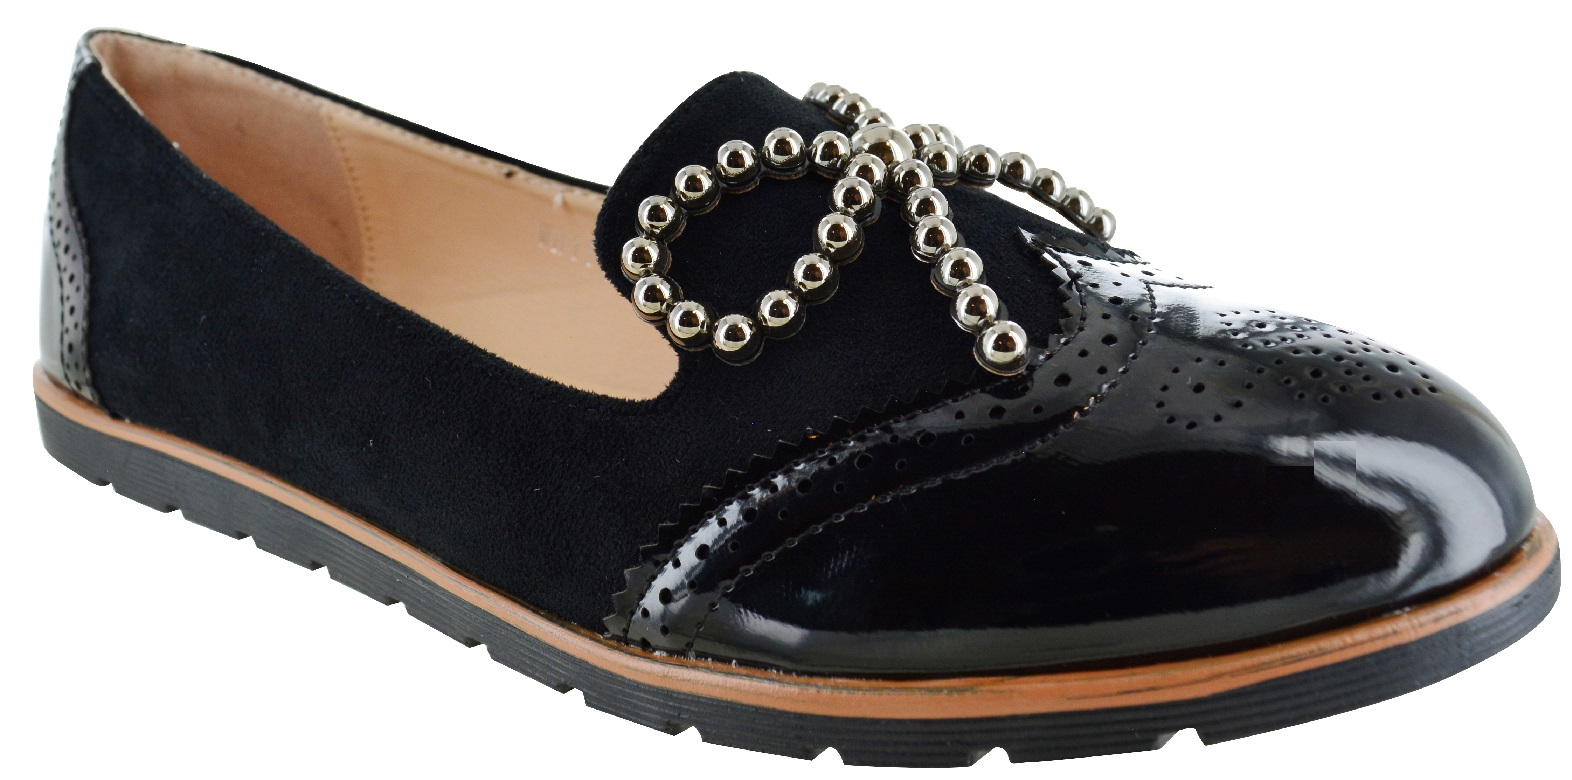 LADIES-WOMENS-FLAT-BOW-SLIP-ON-OFFICE-WORK-BROGUE-LOAFERS-VINTAGE-SHOES-SIZE-3-8 thumbnail 2